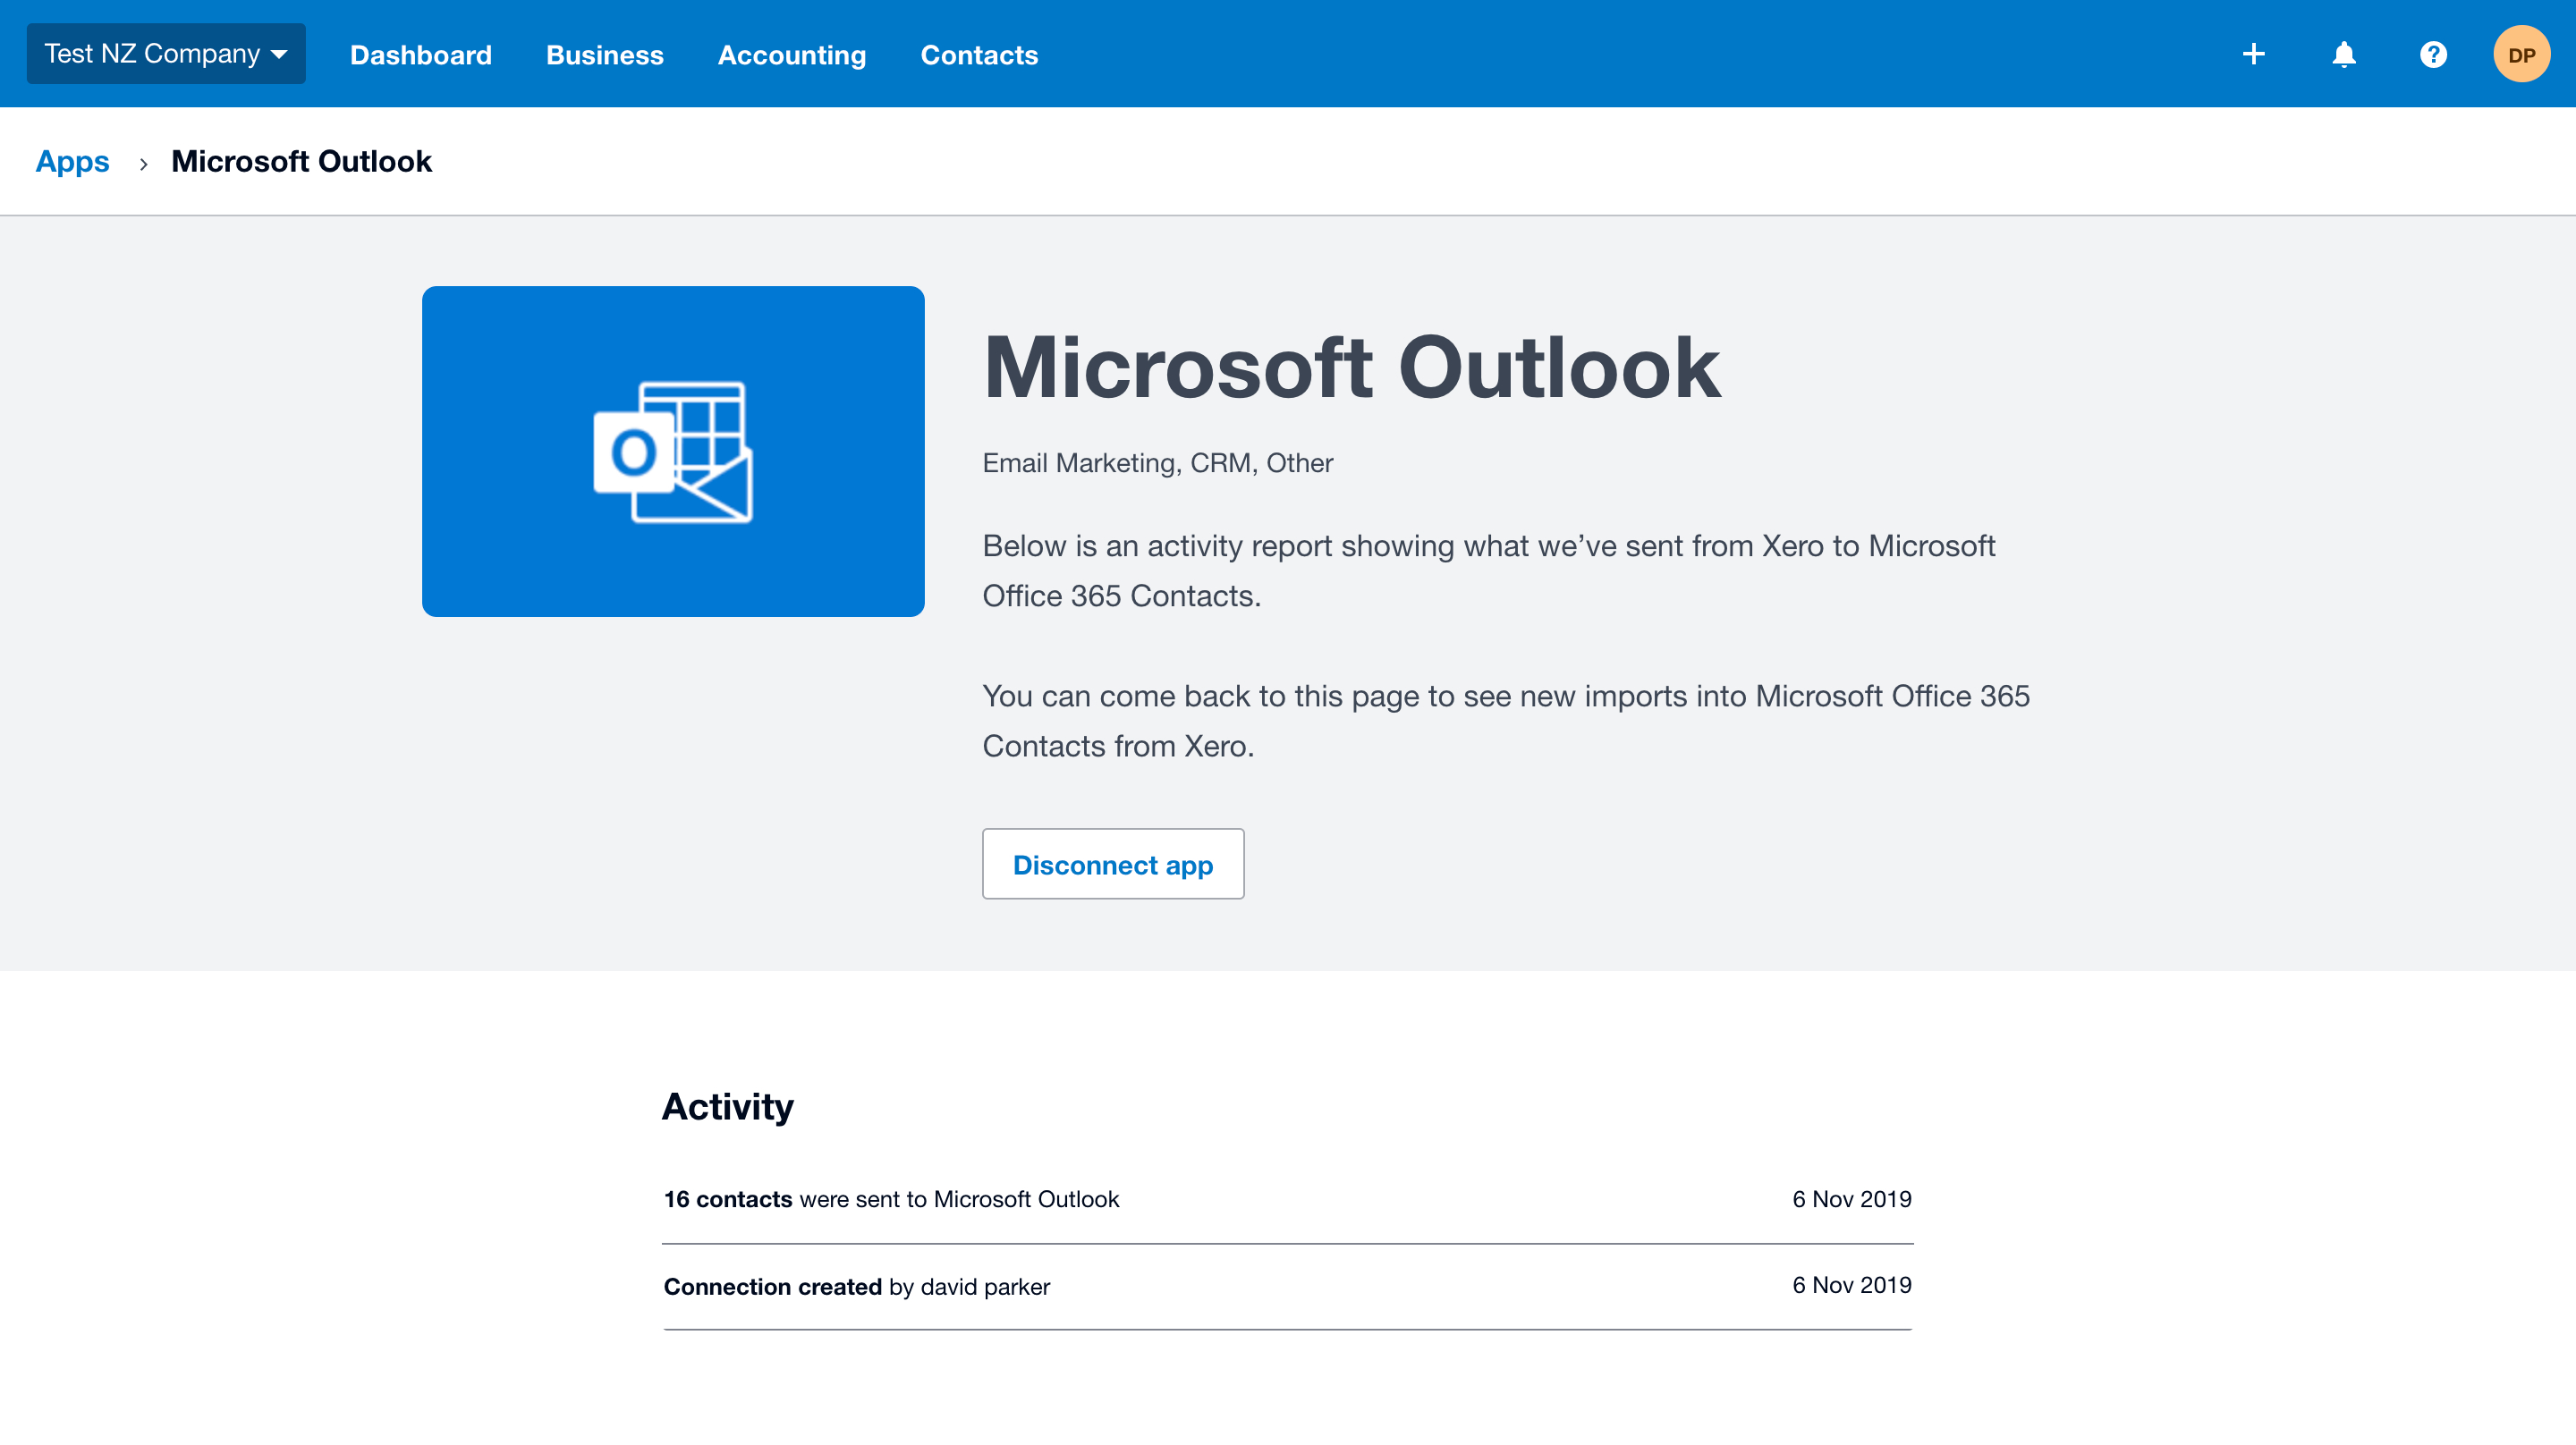 screencapture connect xero microsoft outlook 2019 11 06 11 45 58